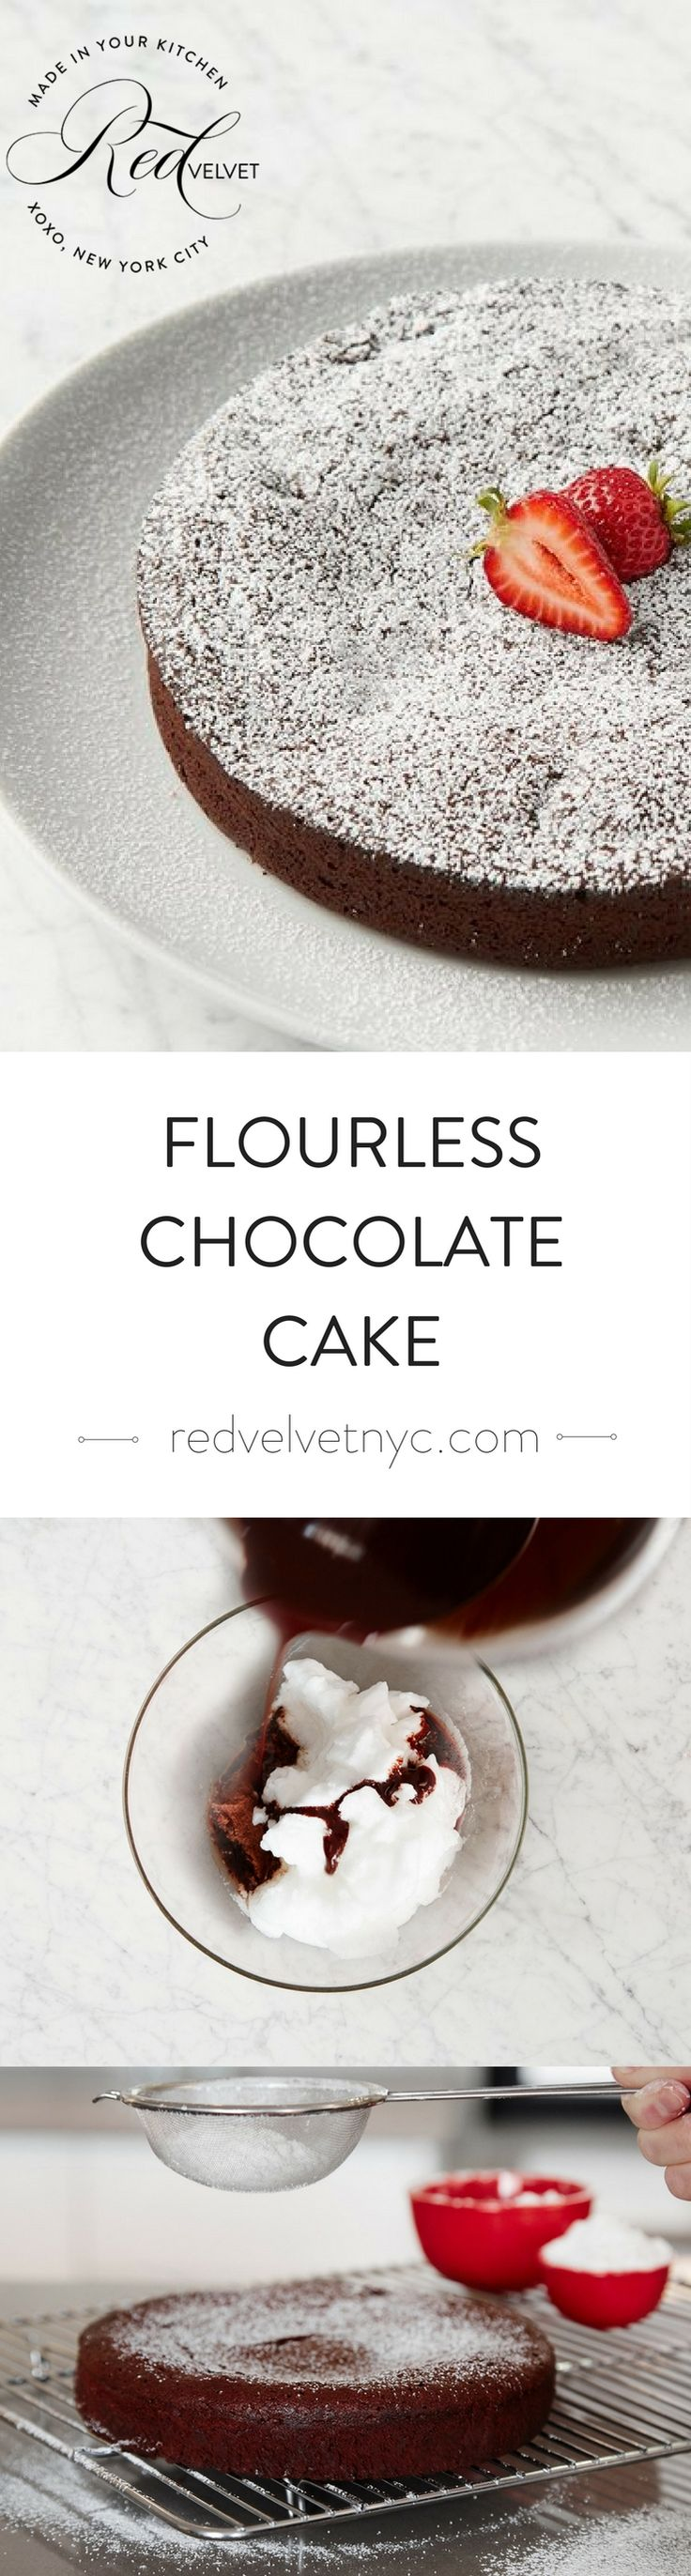 This smooth and creamy brownie-style cake is dense and rich, bursting with…